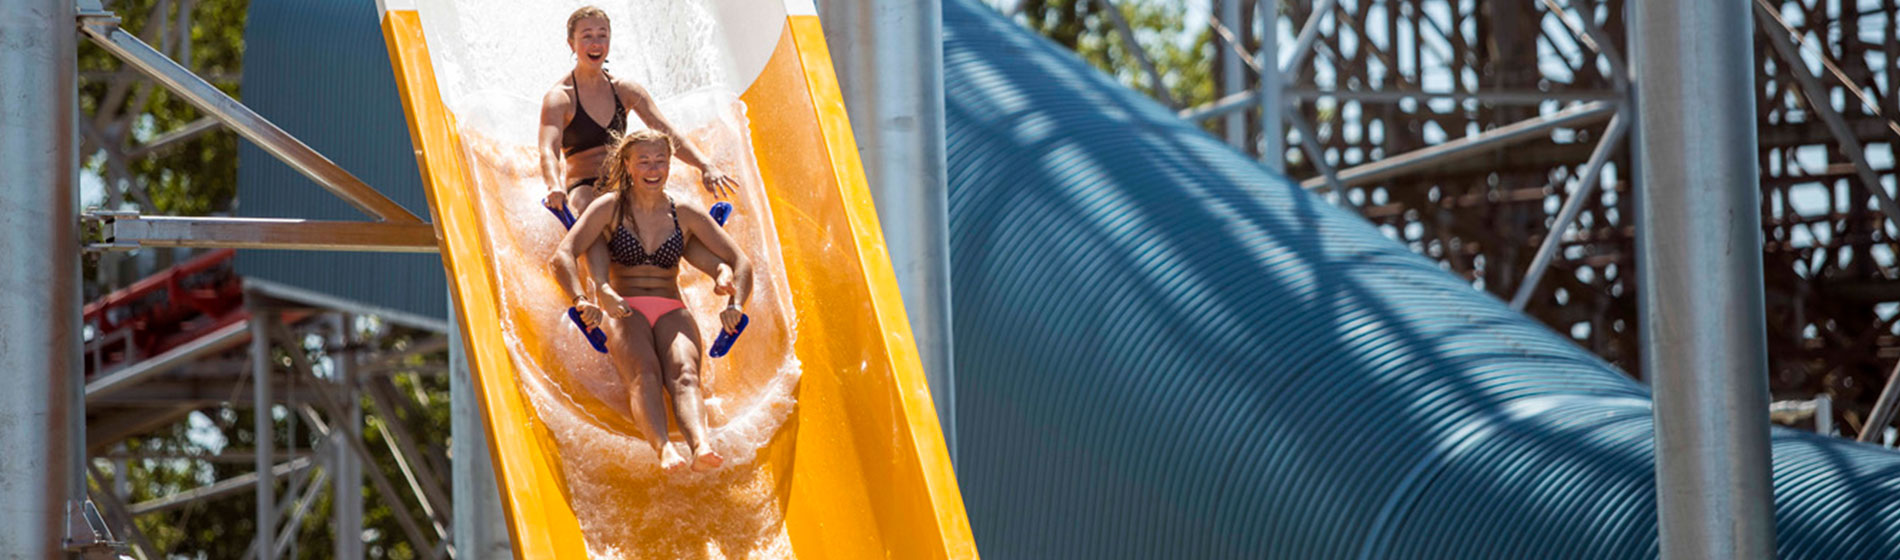 Water Park Slides & Attractions at Cedar Point